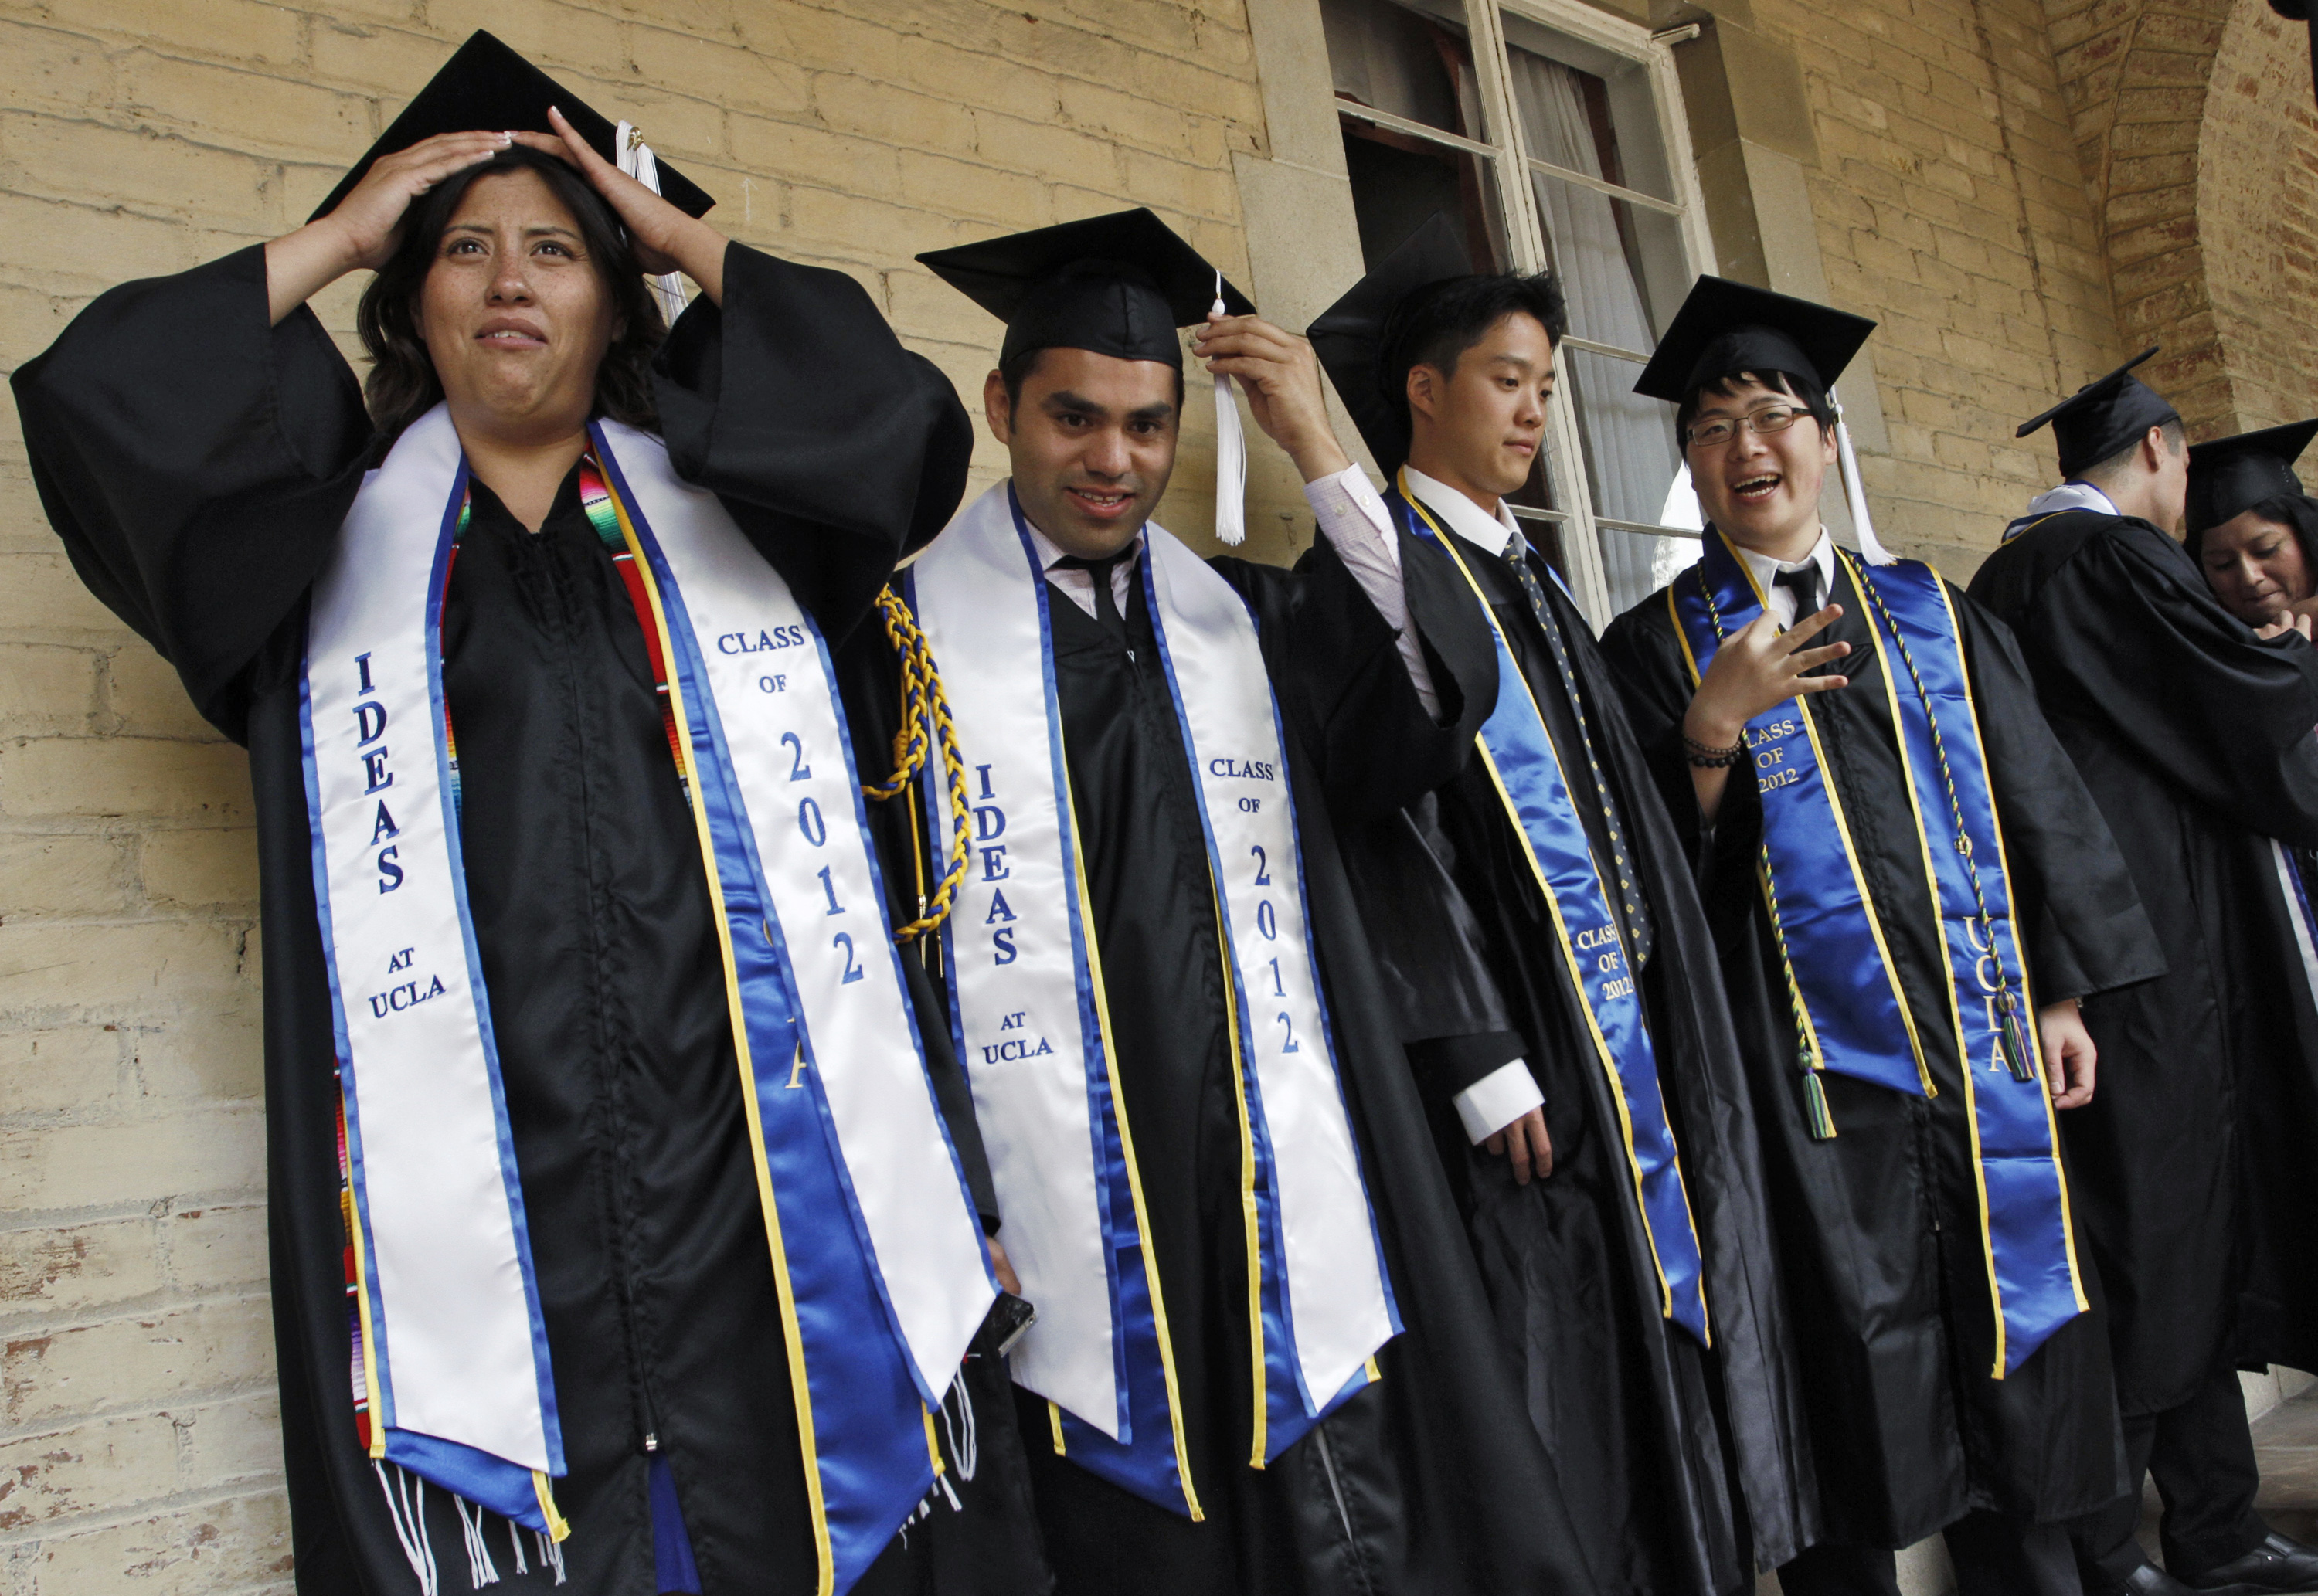 Pichardo stands in line with fellow graduating undocumented UCLA students at a church near the campus in Los Angeles